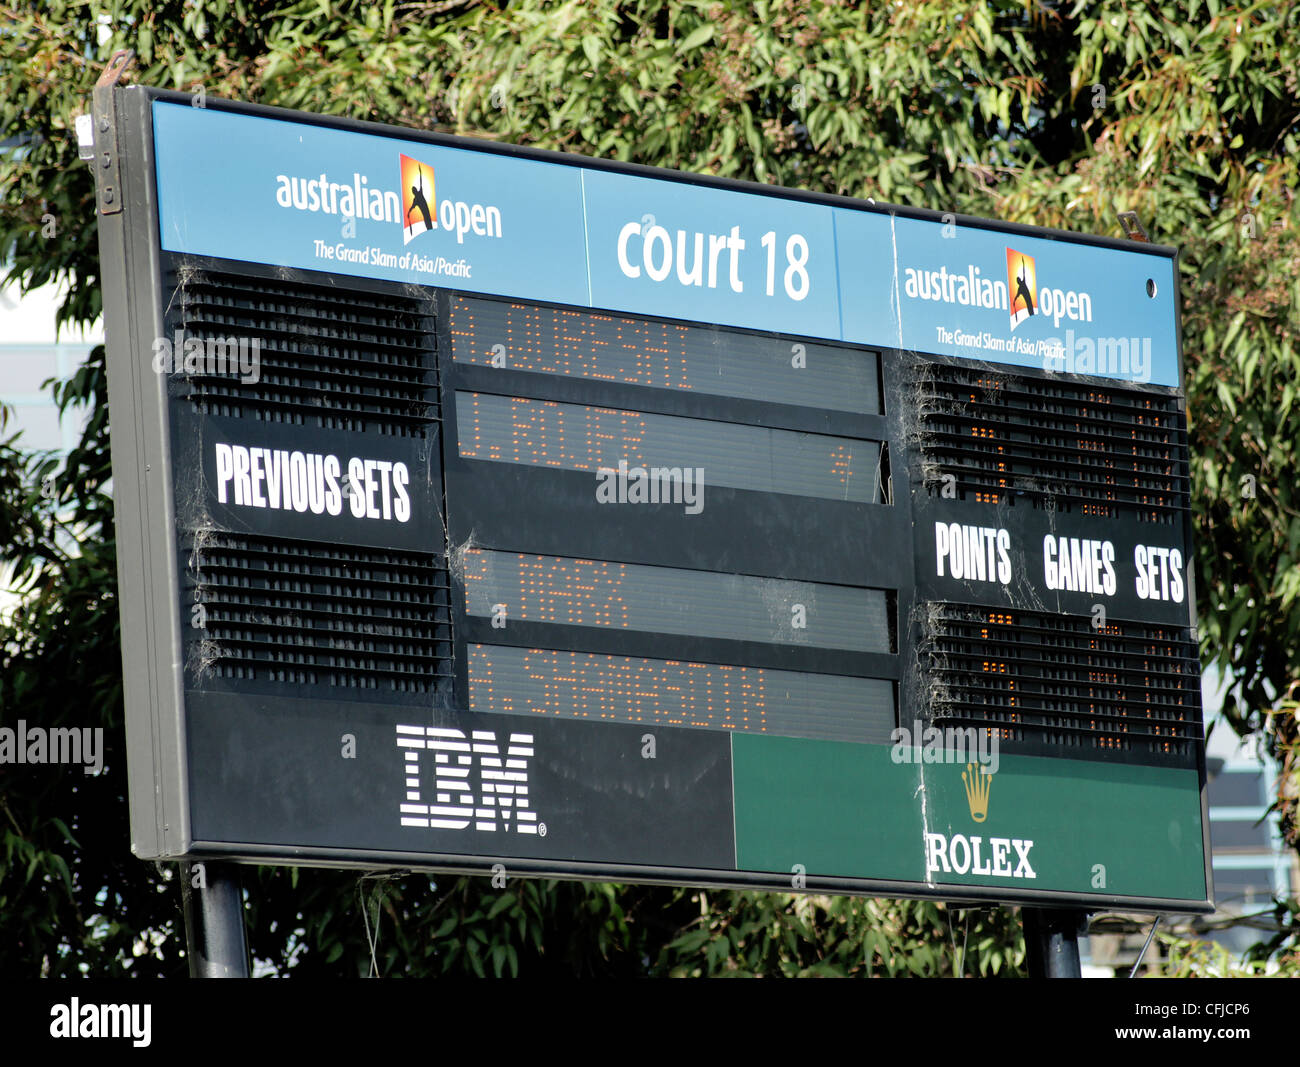 MELBOURNE, AUSTRALIA - JANUARY 21, 2012: Court 18 scoreboard shows a first set score from men's doubles January - Stock Image